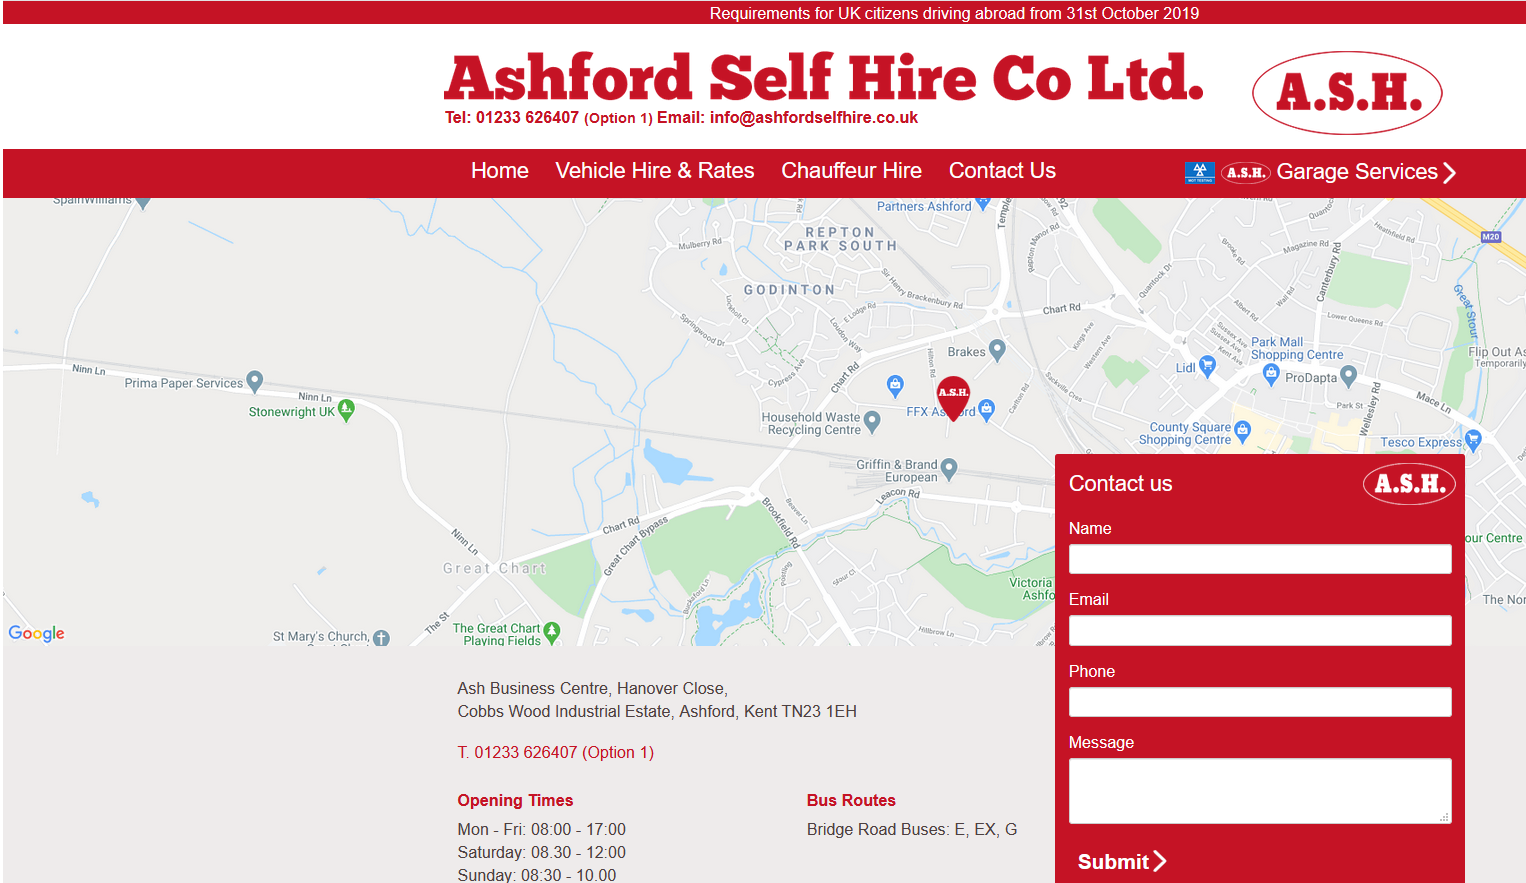 Ashford Self Hire Co Ltd.